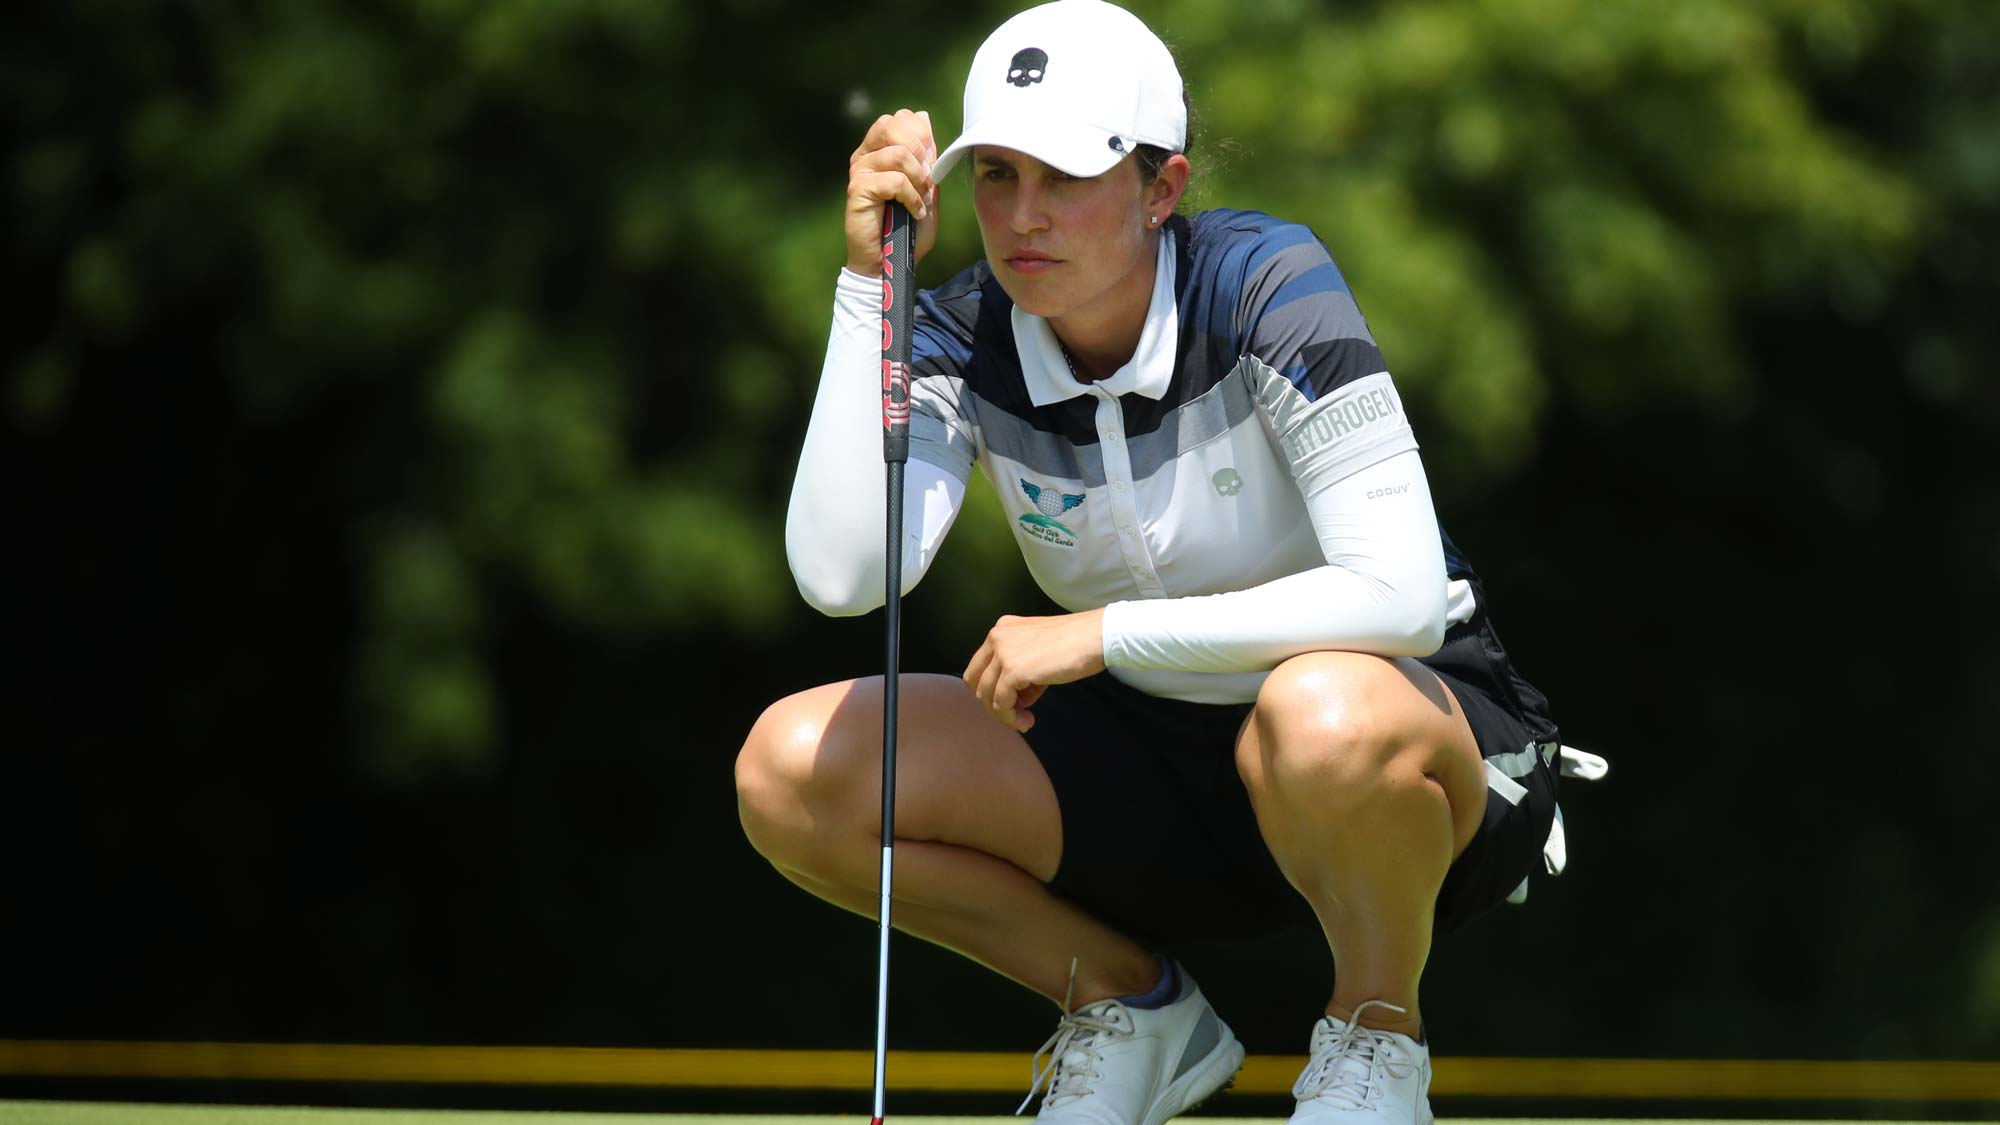 Giulia Molinaro of Italy reads a putt on the sixth green during round three of the Dow Great Lakes Bay Invitational